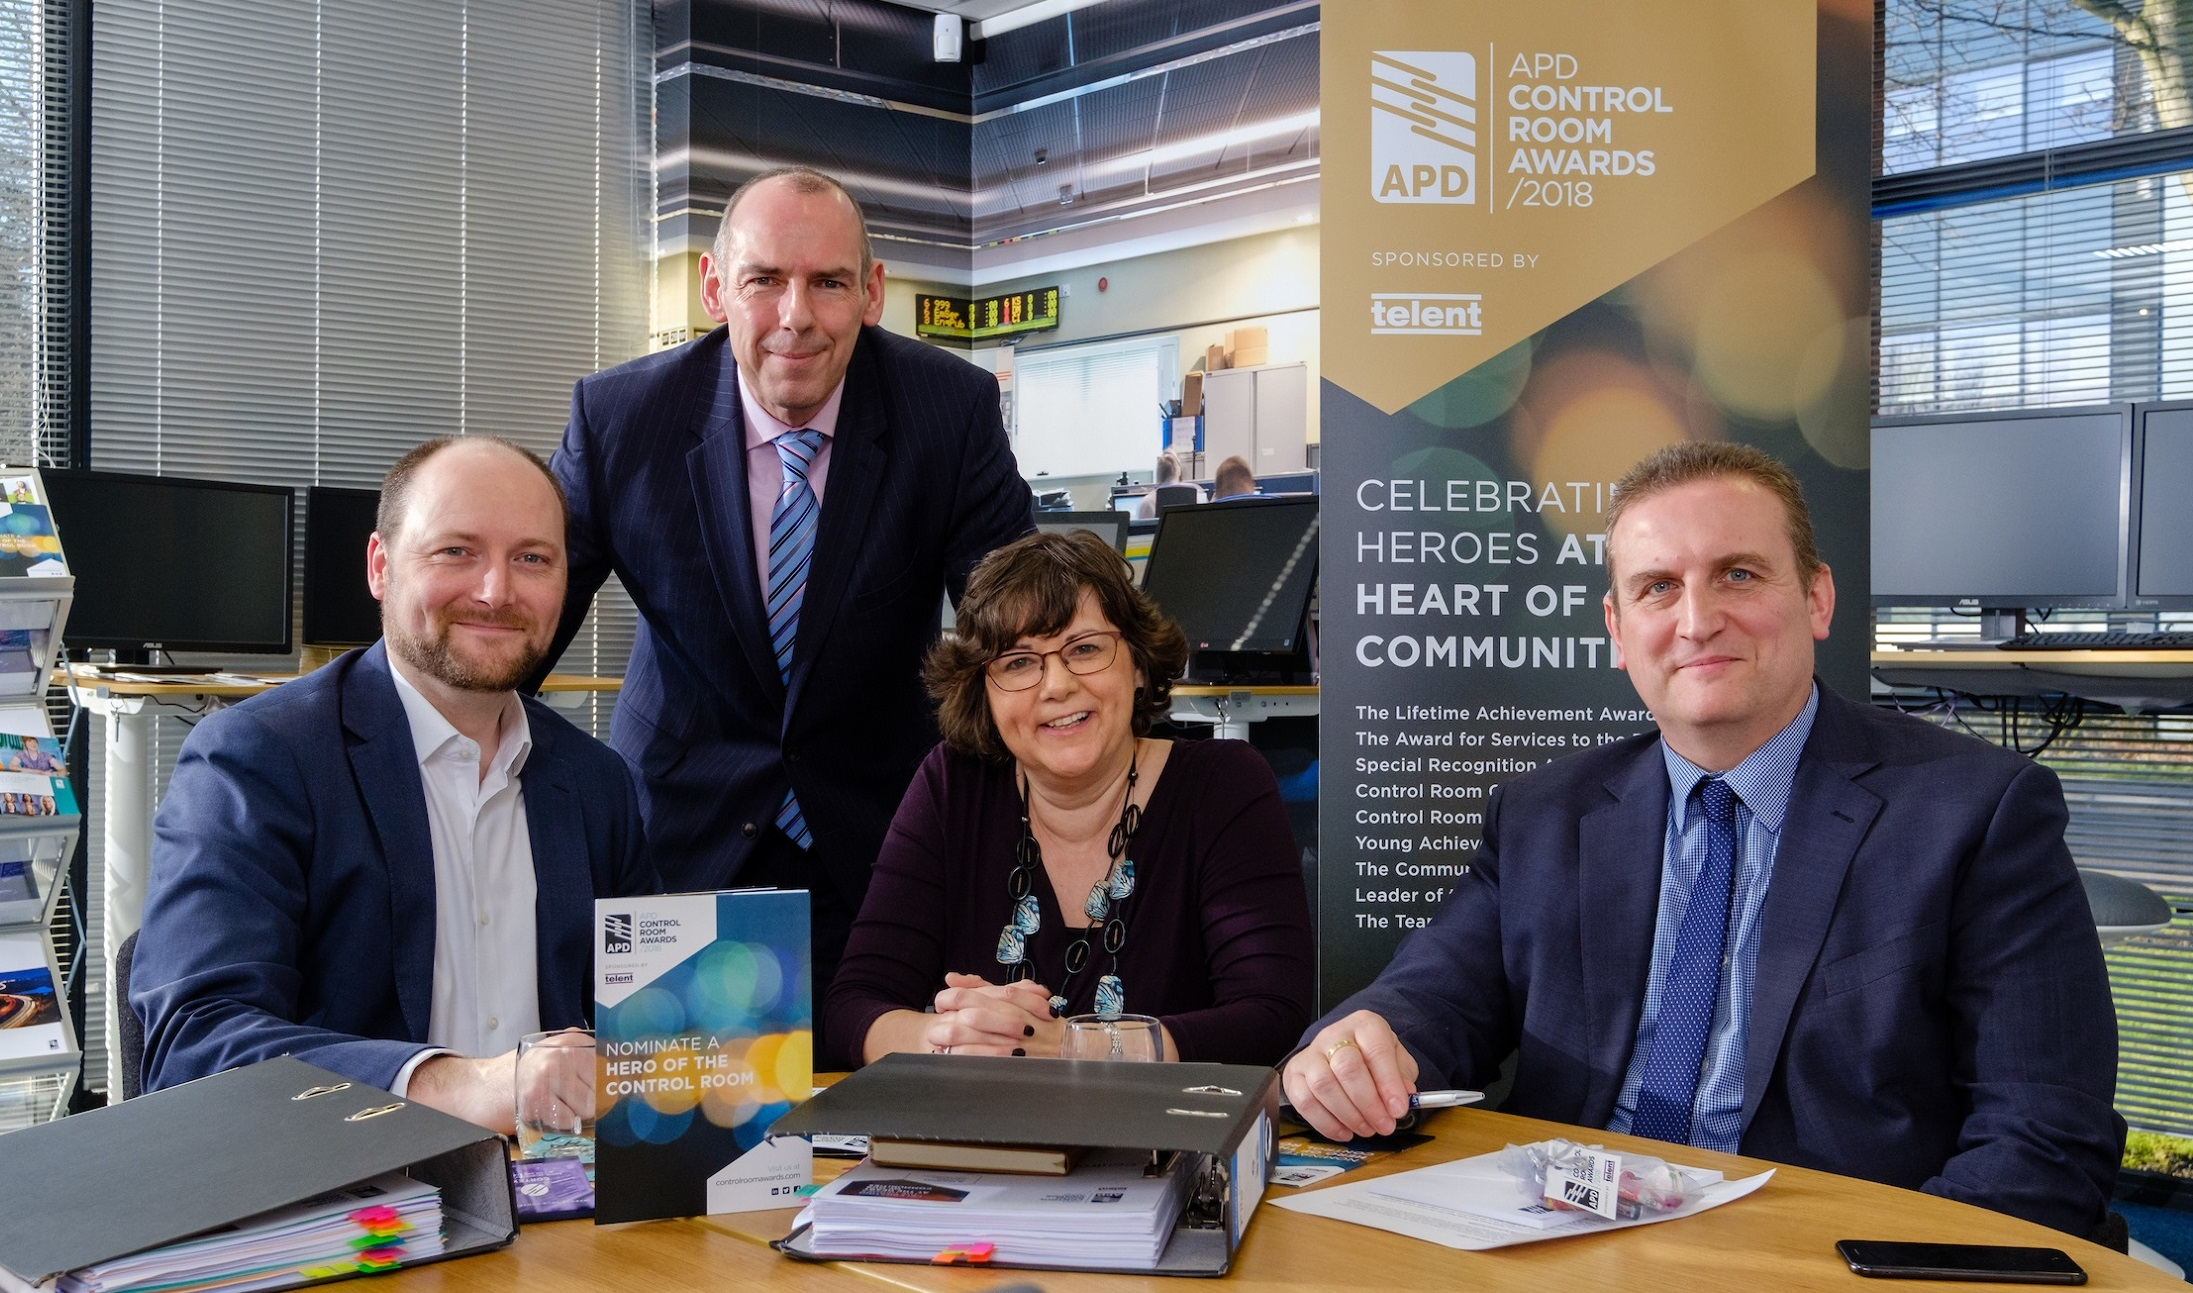 The judging panel for the APD Control Room Awards, from left, Mike Isherwood, Ian Thompson, Sue Noyes and Barry Zielinski. Chris Dreyfuss-Gibson and Cheryl Rolph OBE participated in the judging remotely.